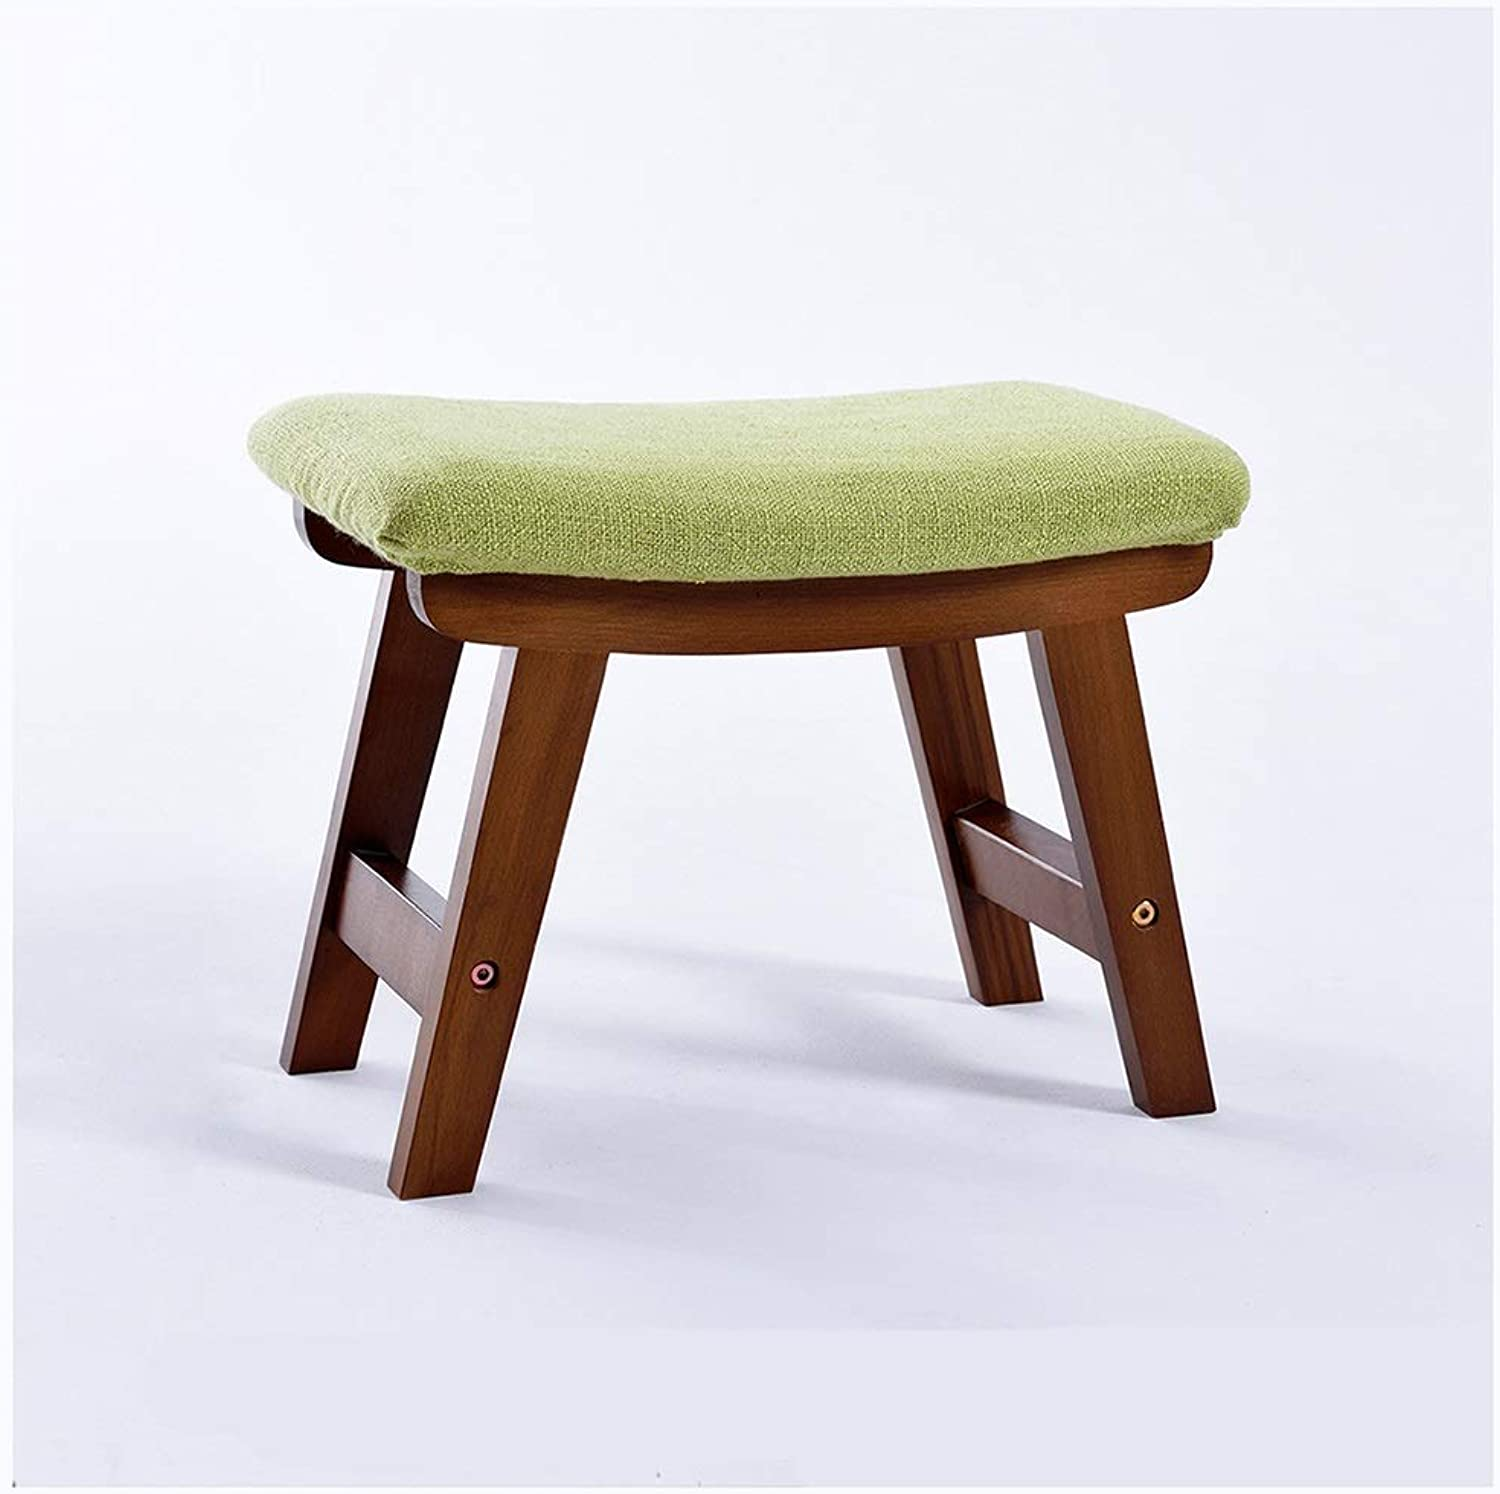 SMC stool Fashion Creative Home Solid Wood Fabric Change shoes Stool Sofa Stool Adult Foot Stool (color   Green)